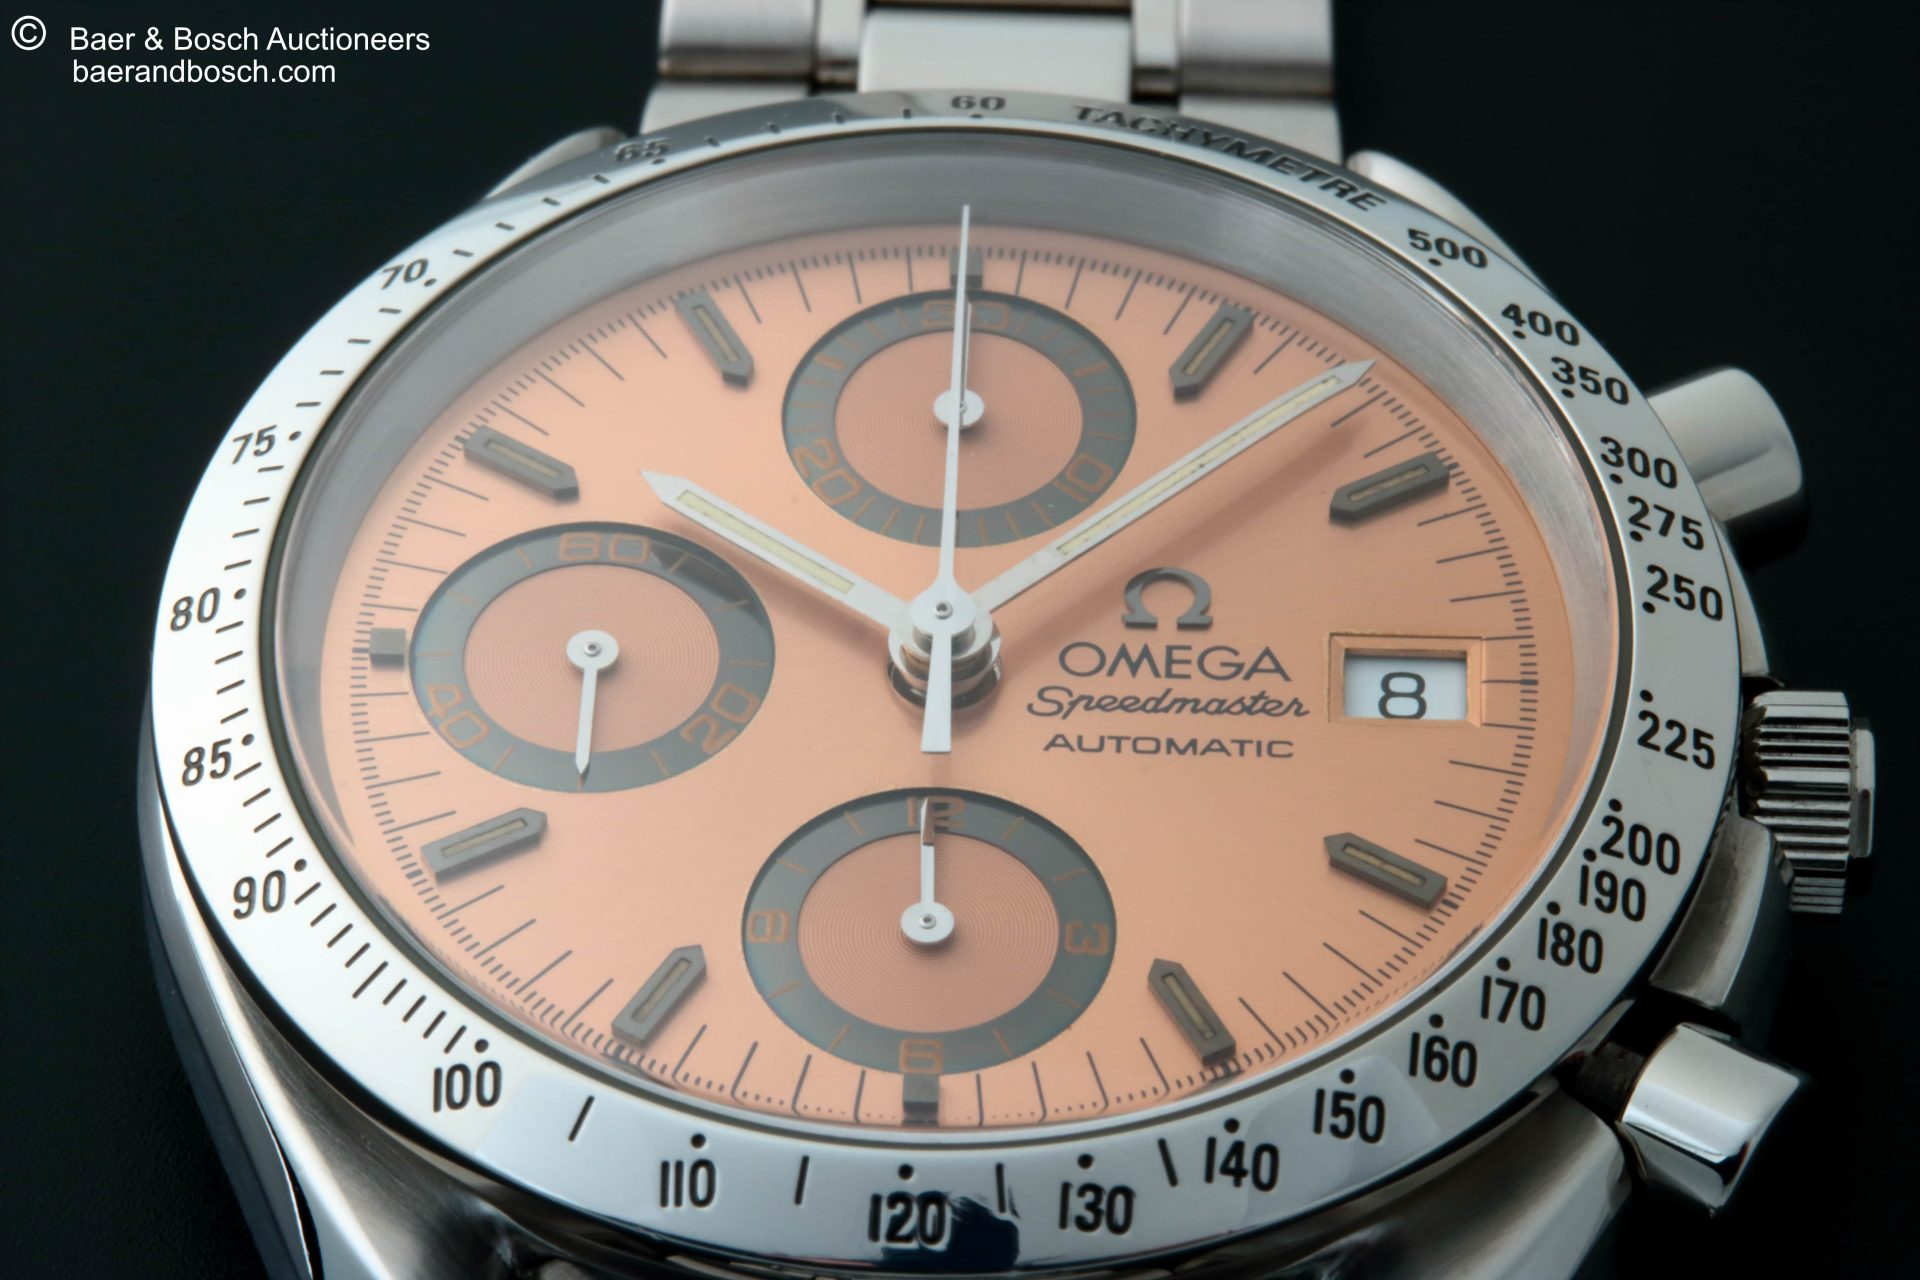 Omega Speedmaster Date Anniversary Salmon Copper Dial Watch 3511.60 - Baer & Bosch Collecting Times